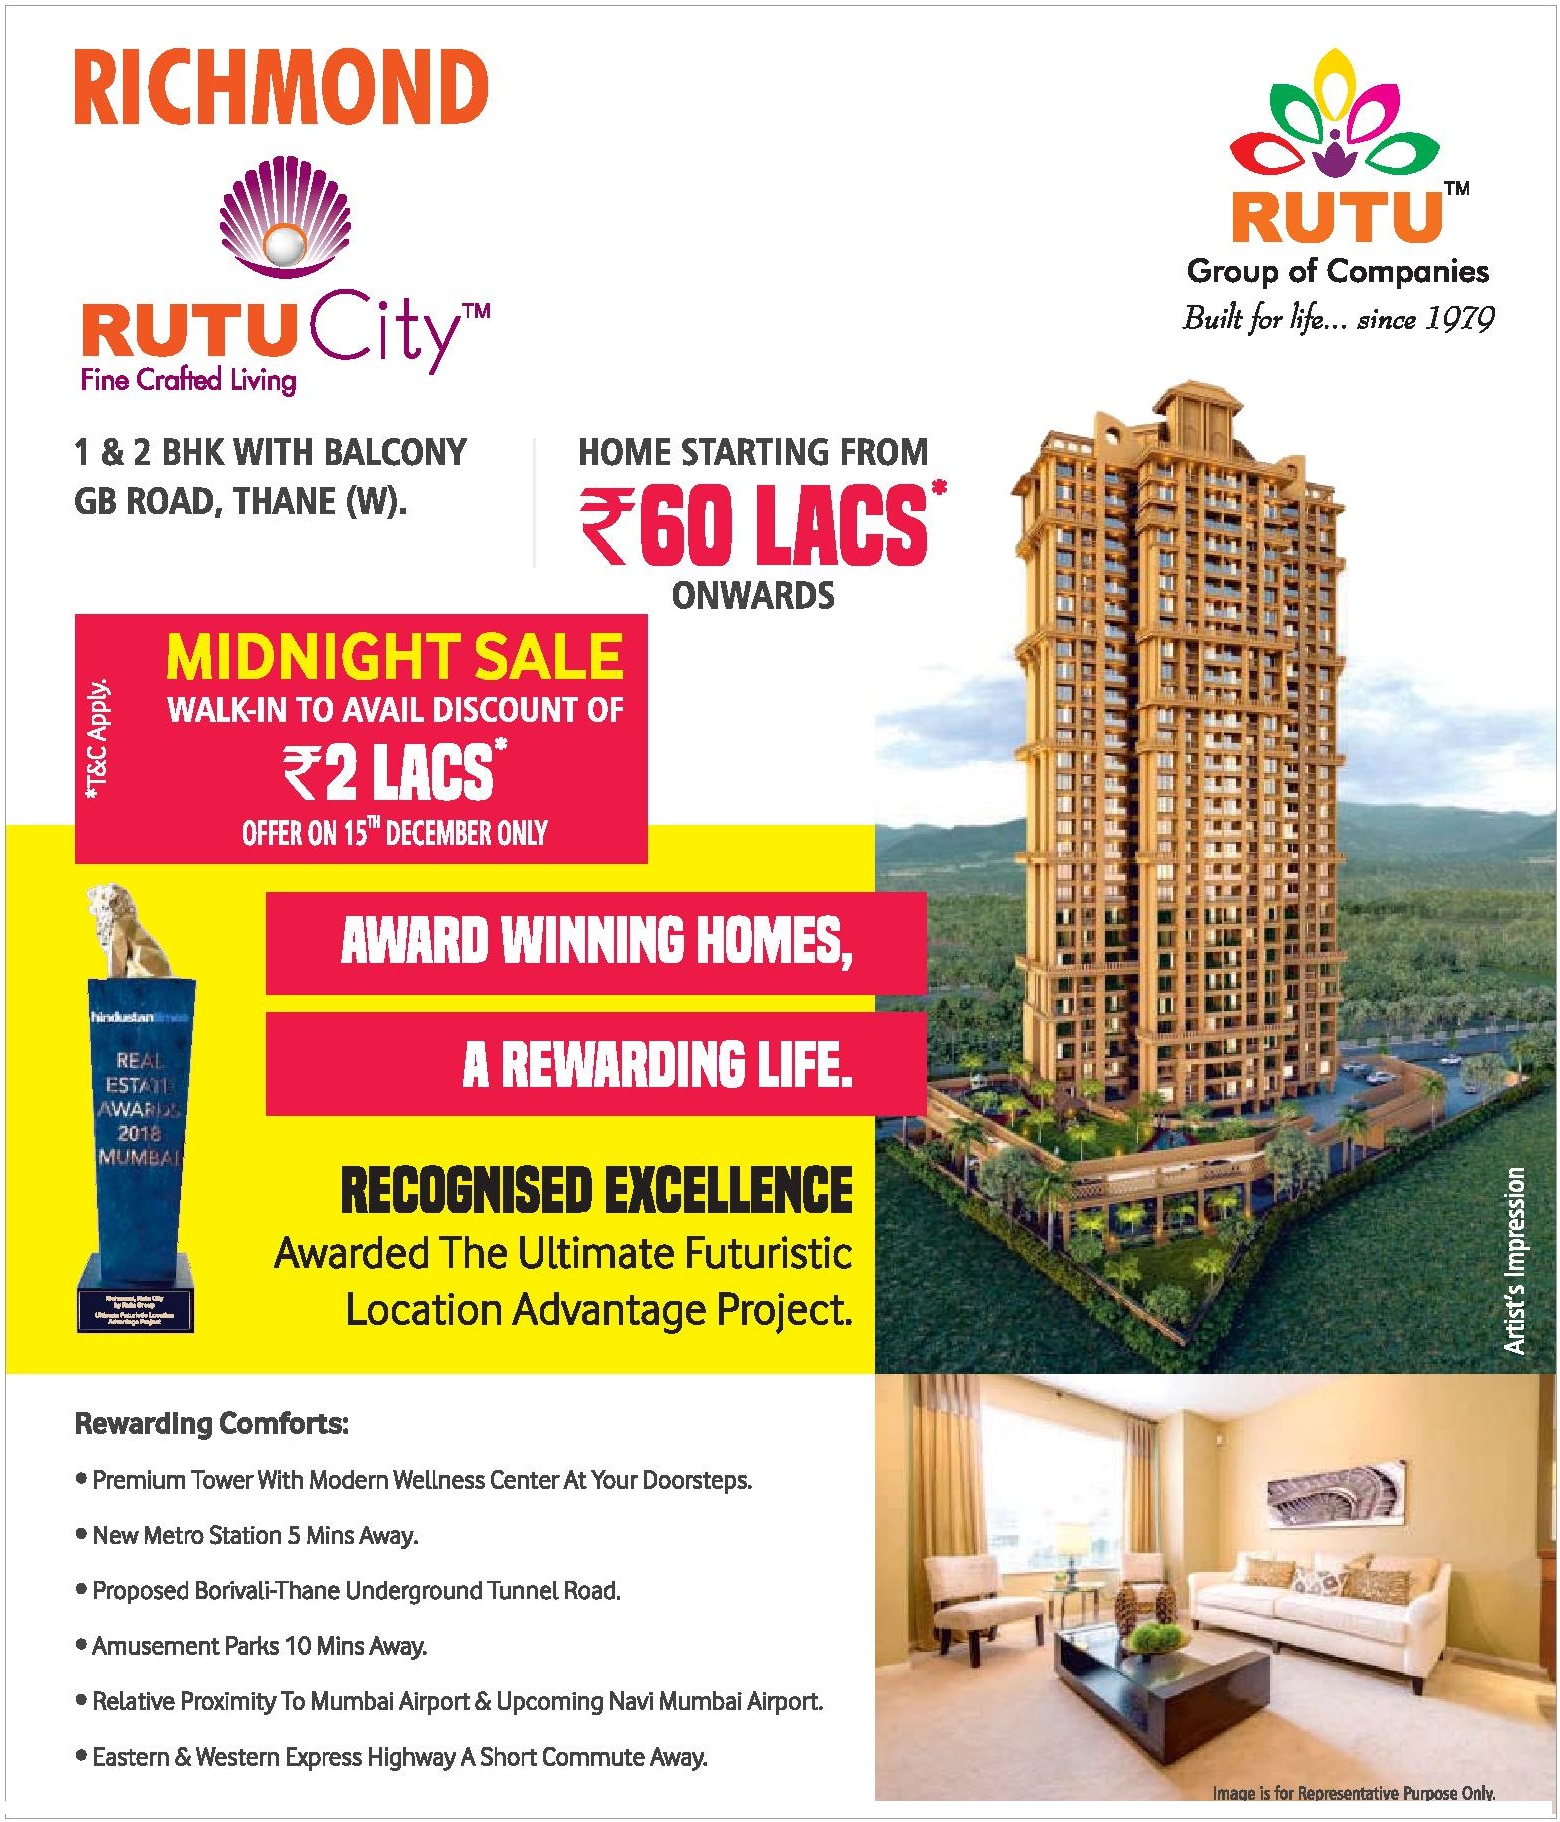 Walk in to avail discount of Rs 2 lakhs at Rutu City Richmond in Mumbai